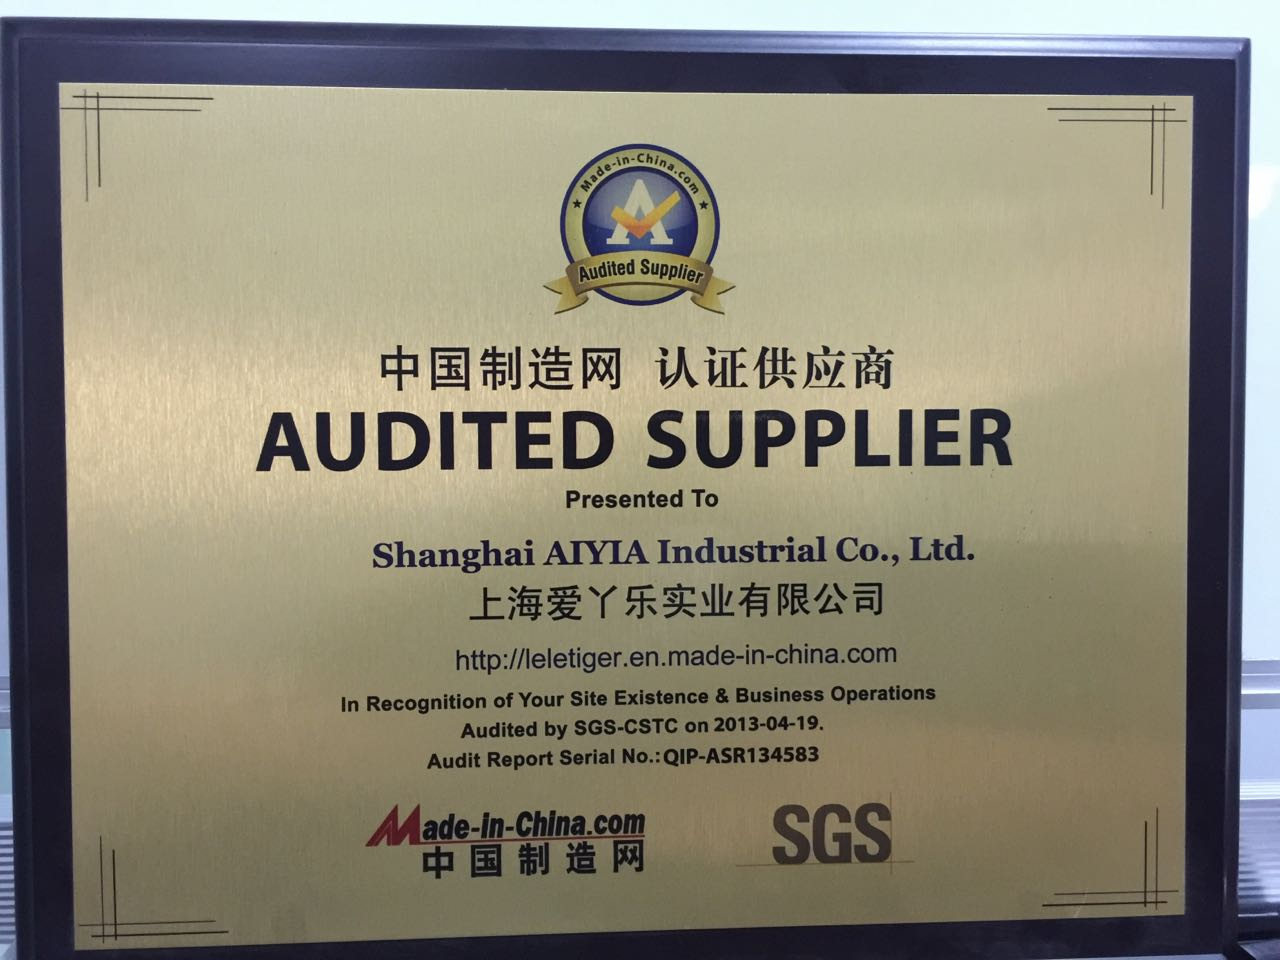 Audited Supplier -MADE IN CHINA